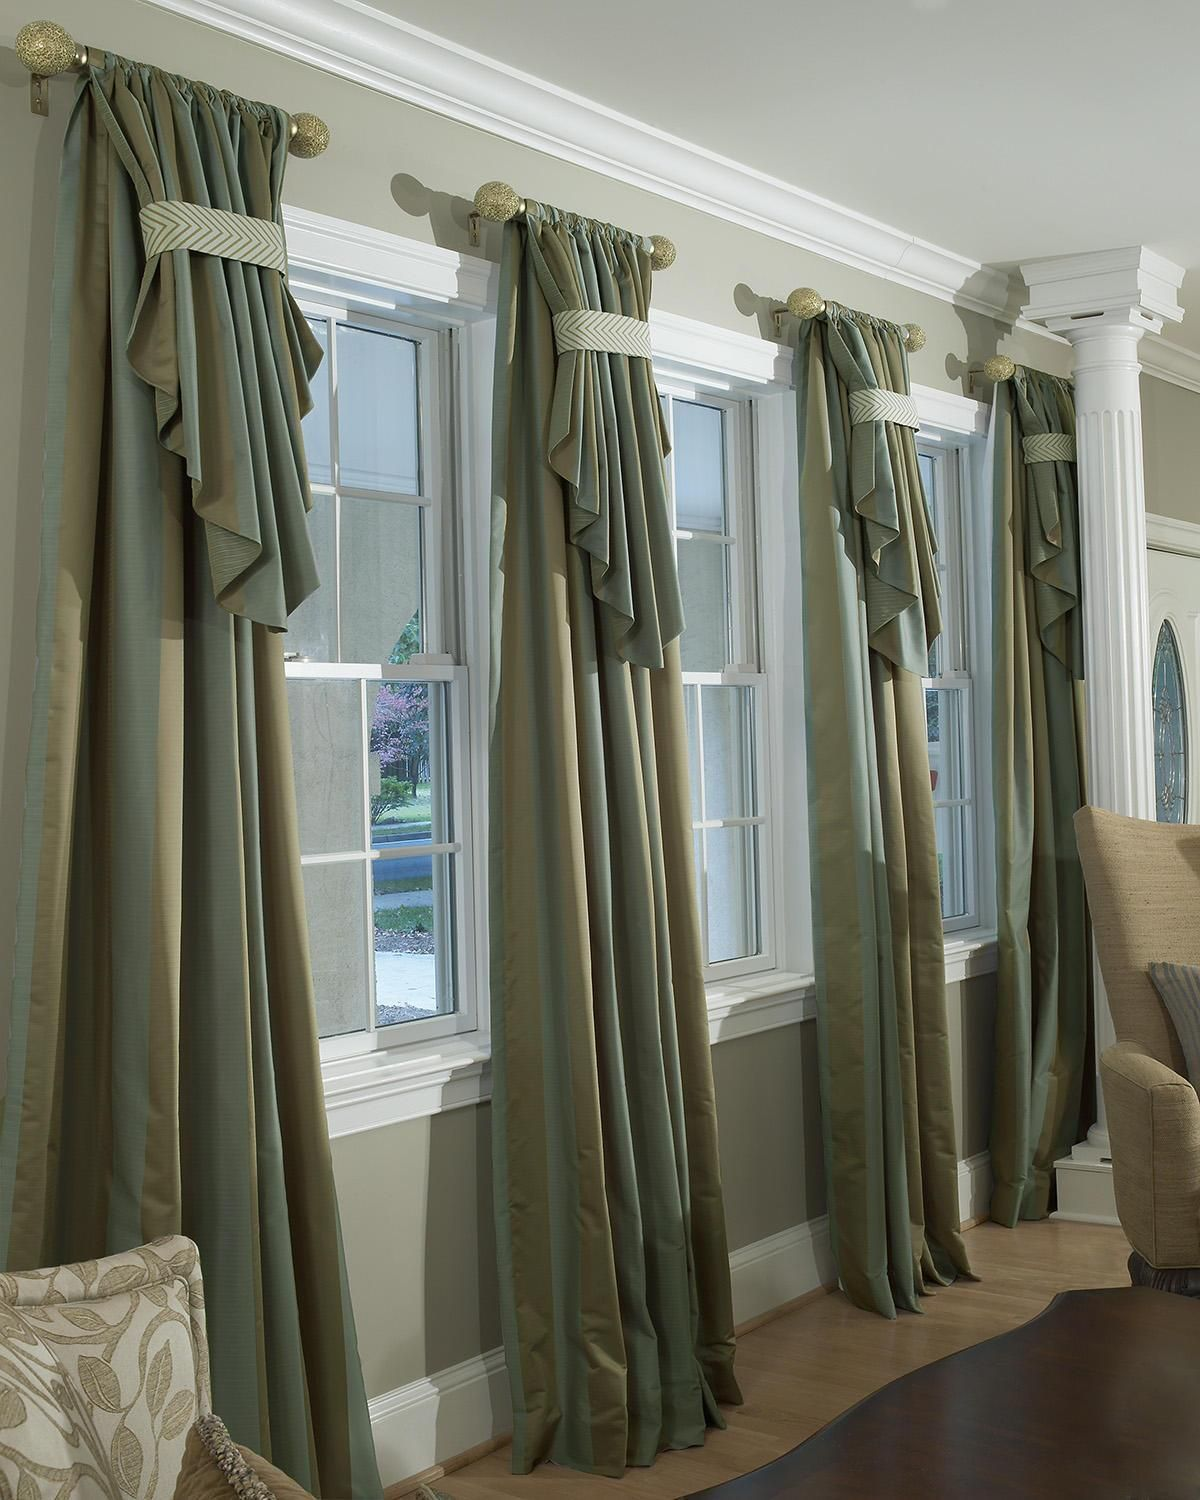 Dining room window coverings   window treatment ideas for every room in your home  window